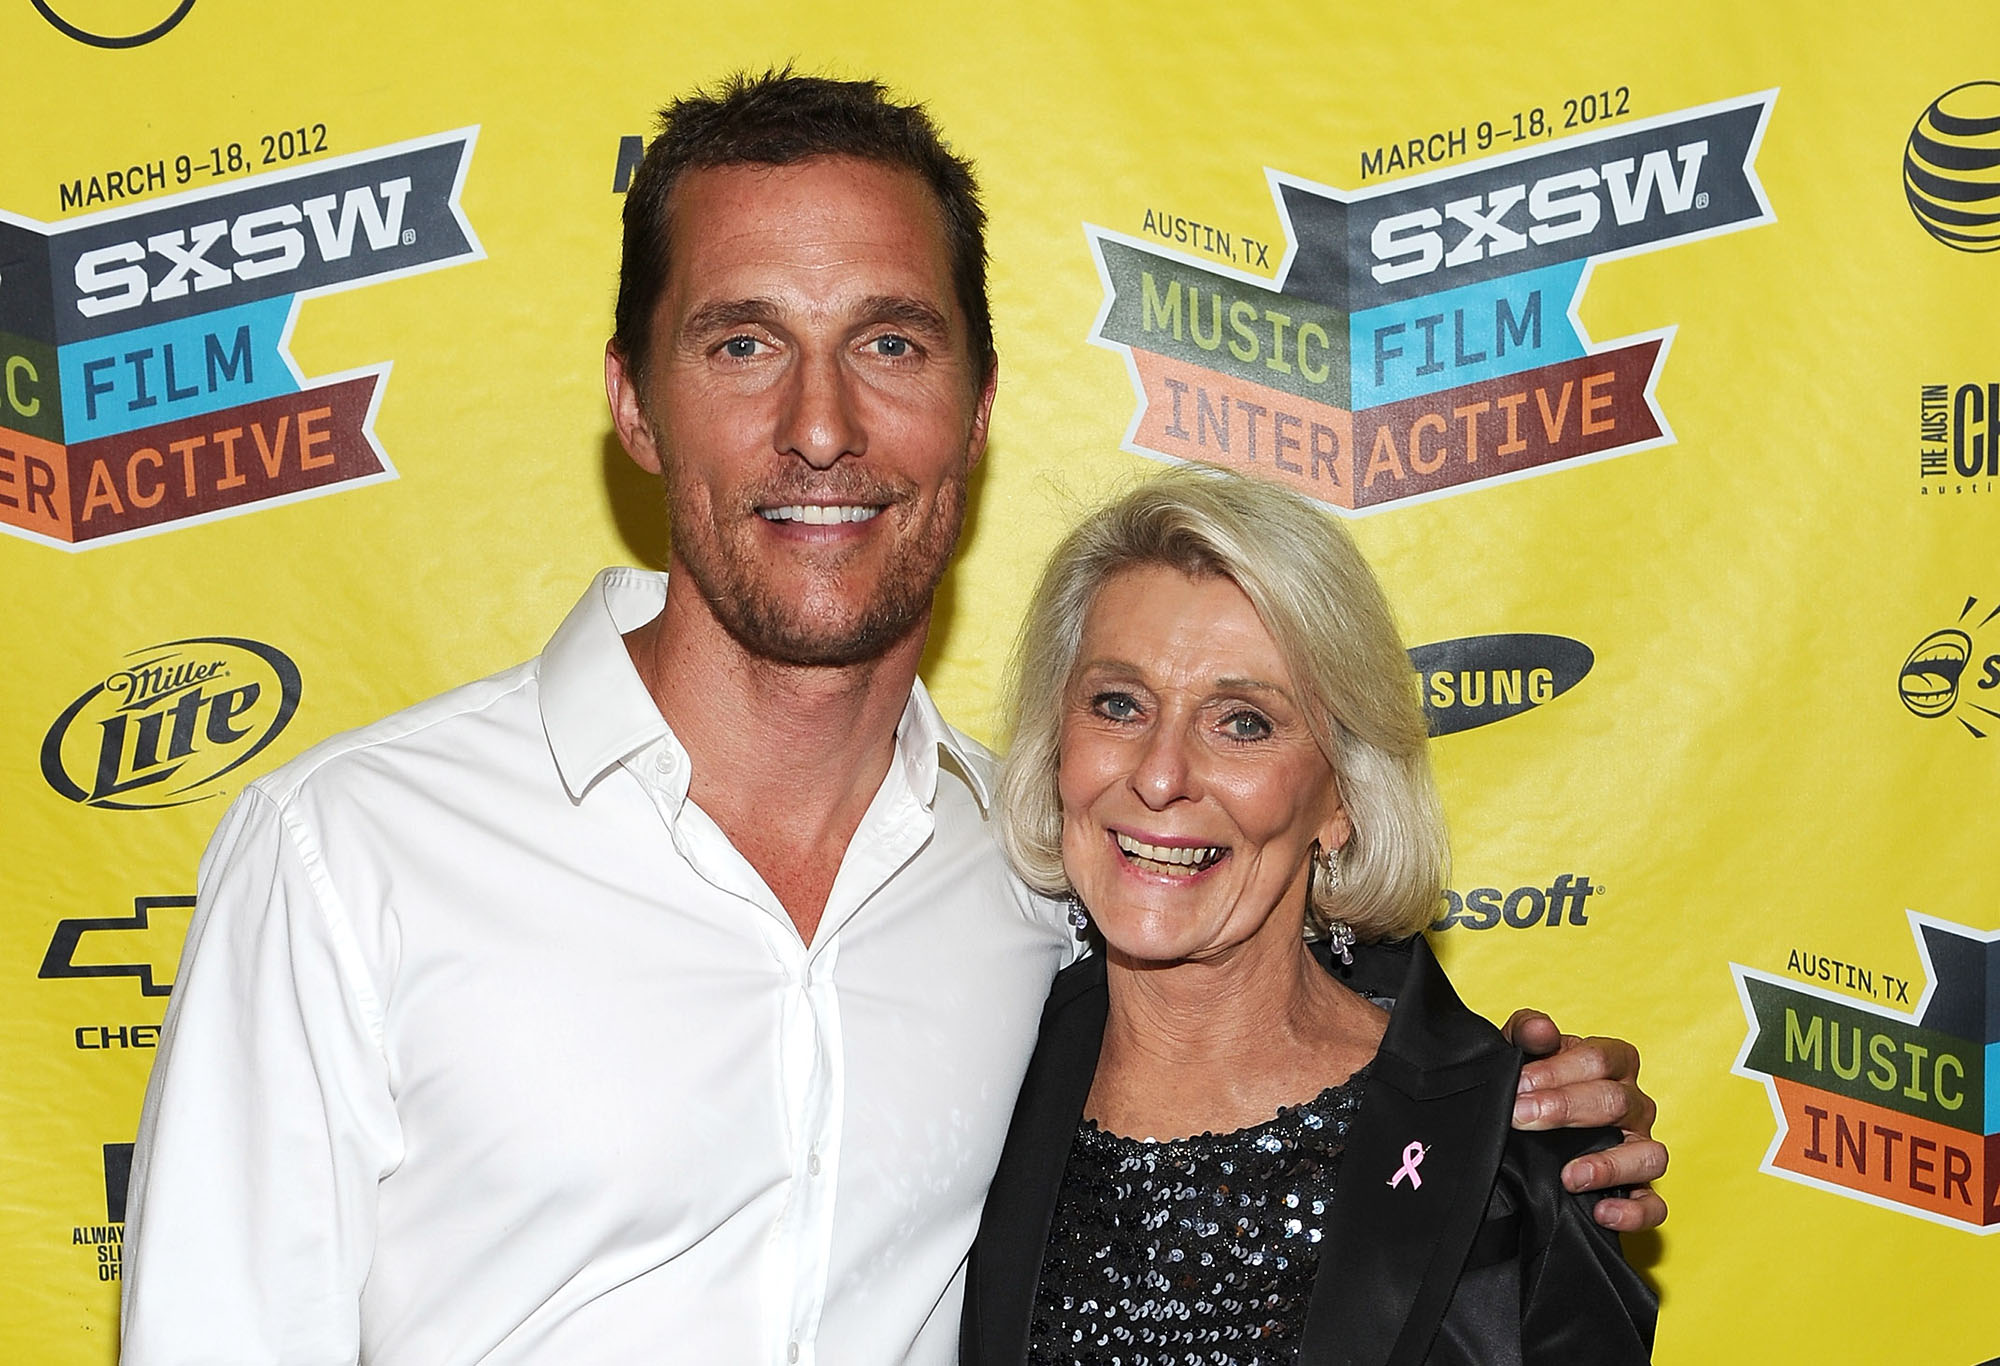 Matthew McConaughey (L) and mother Kay McConaughey attend the world premiere of  Bernie  during the 2012 SXSW Music, Film + Interactive Festival at Paramount Theatre on March 13, 2012 in Austin, Texas.  (Photo by Michael Buckner/Getty Images for SXSW)